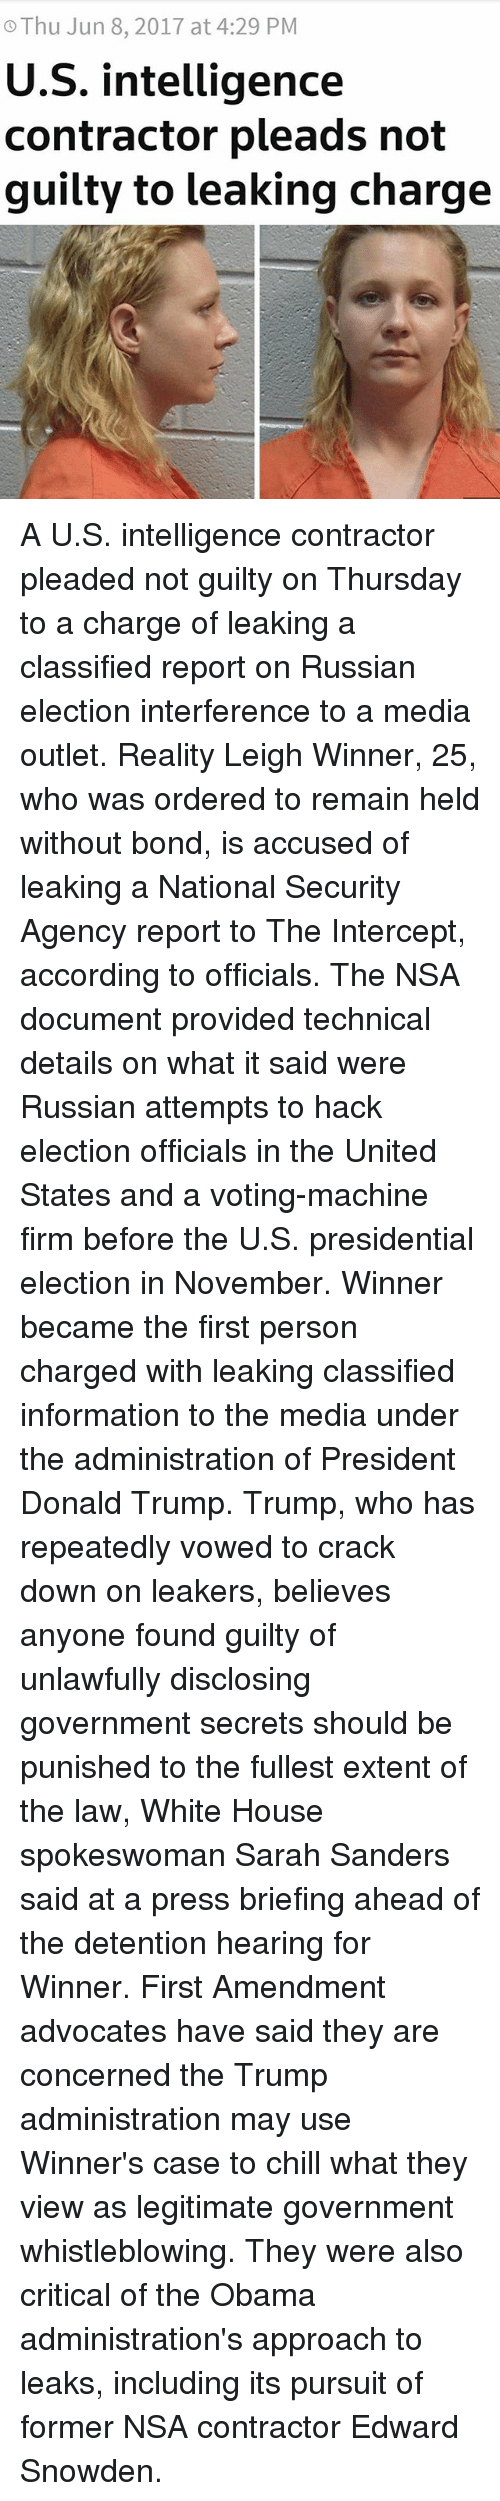 voting machine: Thu Jun 8, 2017 at 4:29 PM  U.S. intelligence  contractor pleads not  guilty to leaking charge A U.S. intelligence contractor pleaded not guilty on Thursday to a charge of leaking a classified report on Russian election interference to a media outlet. Reality Leigh Winner, 25, who was ordered to remain held without bond, is accused of leaking a National Security Agency report to The Intercept, according to officials. The NSA document provided technical details on what it said were Russian attempts to hack election officials in the United States and a voting-machine firm before the U.S. presidential election in November. Winner became the first person charged with leaking classified information to the media under the administration of President Donald Trump. Trump, who has repeatedly vowed to crack down on leakers, believes anyone found guilty of unlawfully disclosing government secrets should be punished to the fullest extent of the law, White House spokeswoman Sarah Sanders said at a press briefing ahead of the detention hearing for Winner. First Amendment advocates have said they are concerned the Trump administration may use Winner's case to chill what they view as legitimate government whistleblowing. They were also critical of the Obama administration's approach to leaks, including its pursuit of former NSA contractor Edward Snowden.